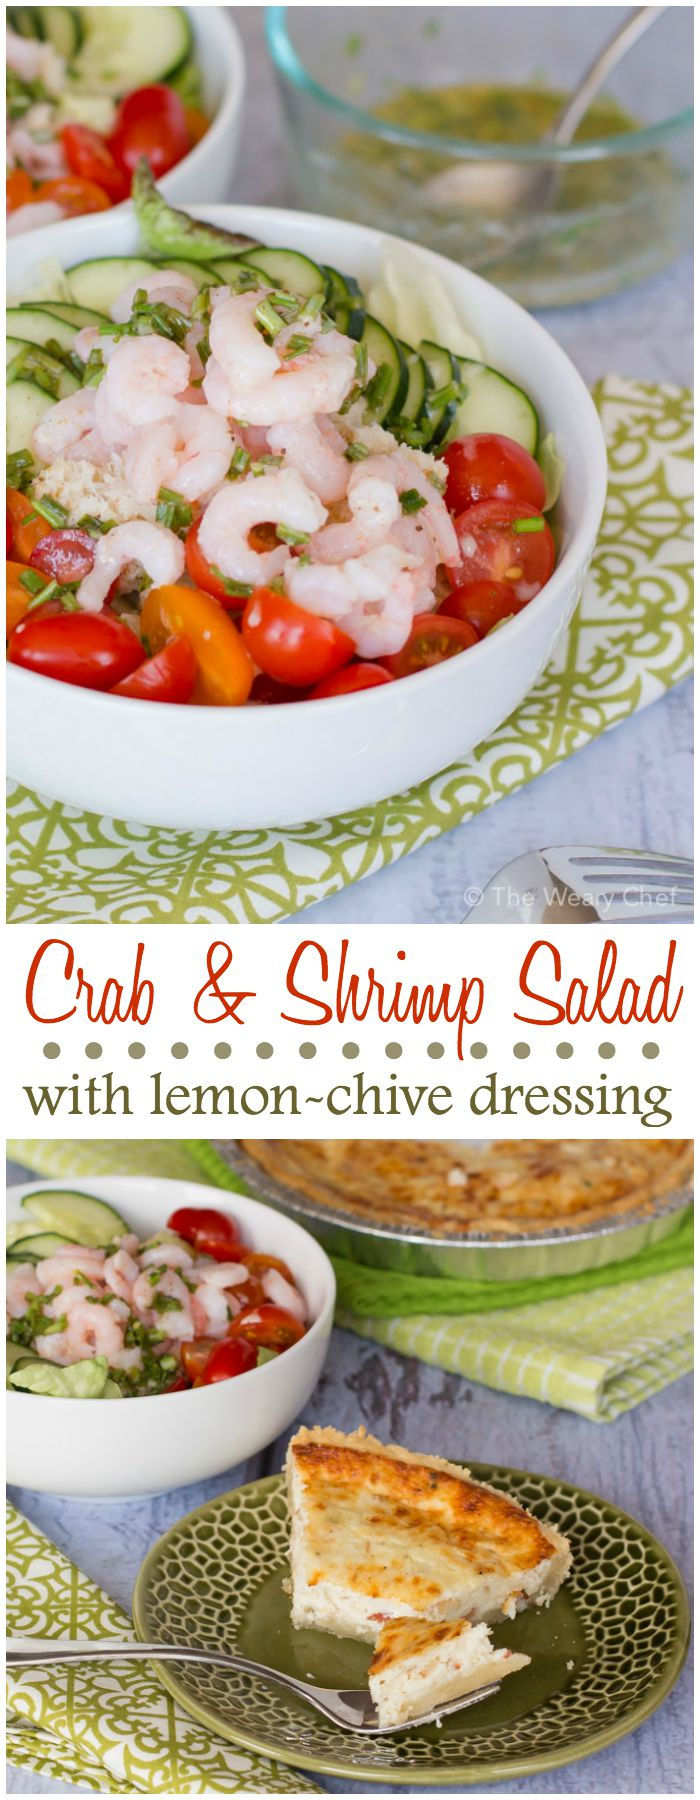 You'll love this lemony side salad recipe with crab and shrimp. Try it paired with quiche!